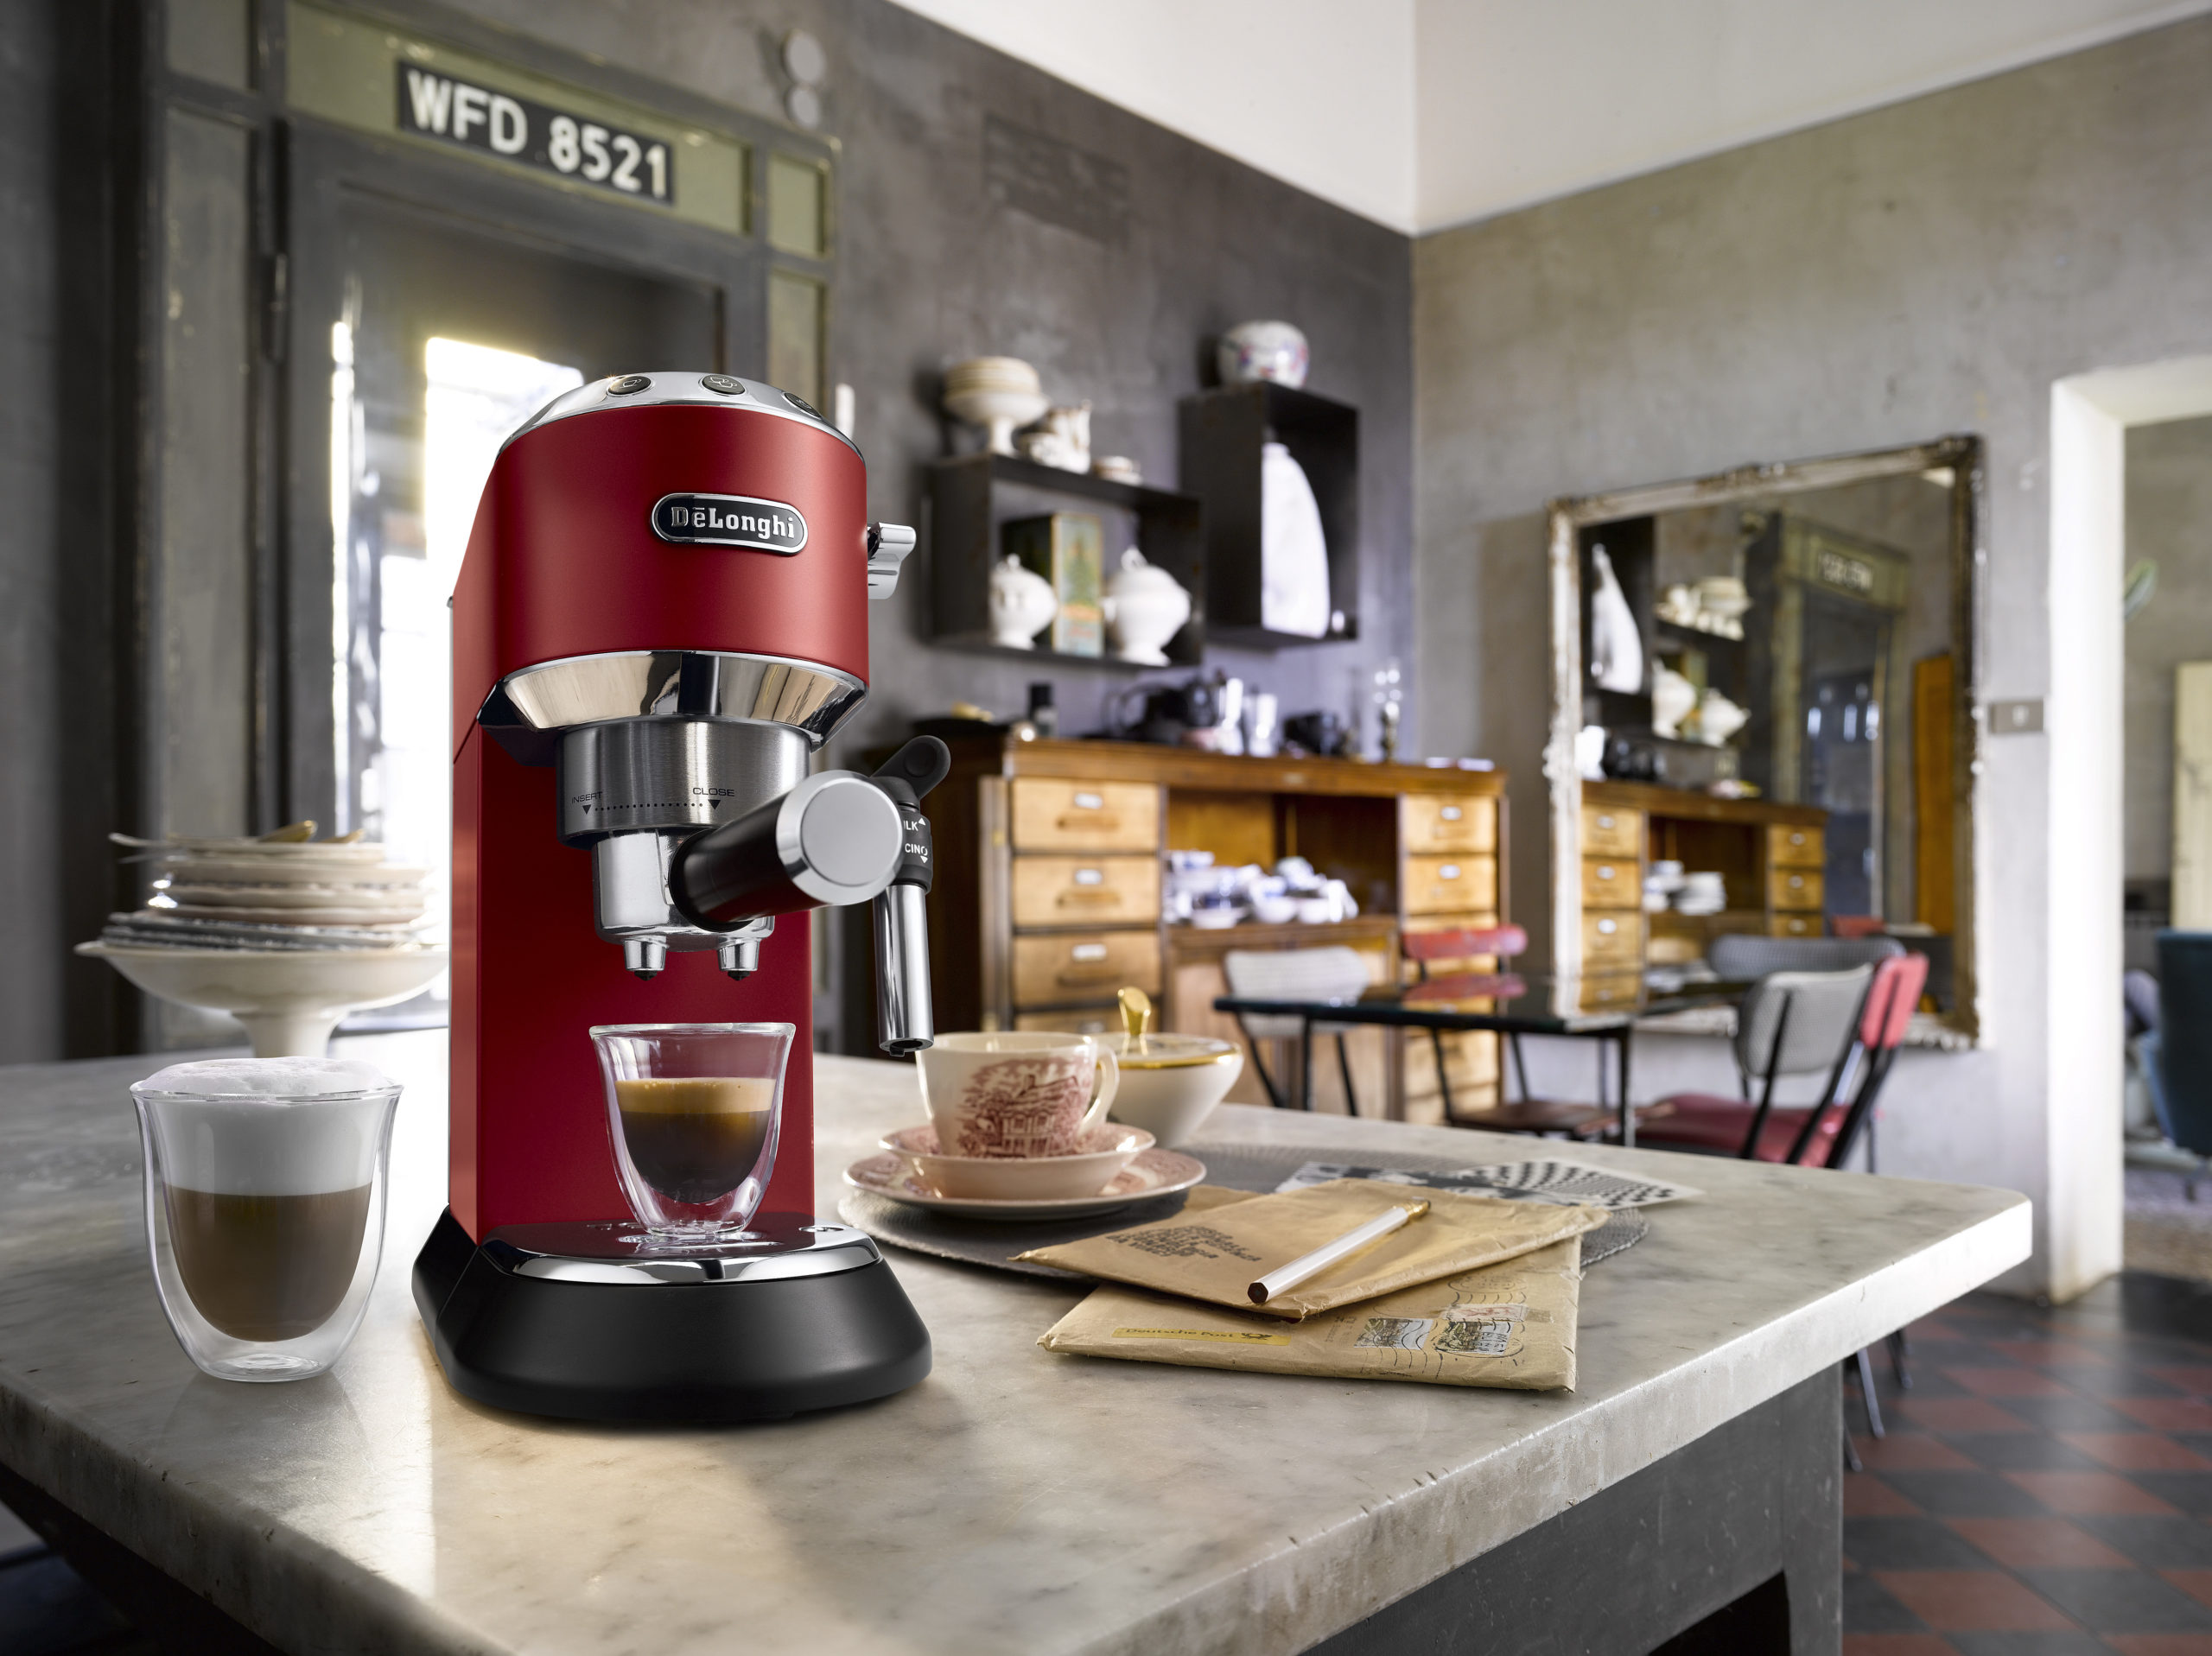 red coffee machine on kitchen table